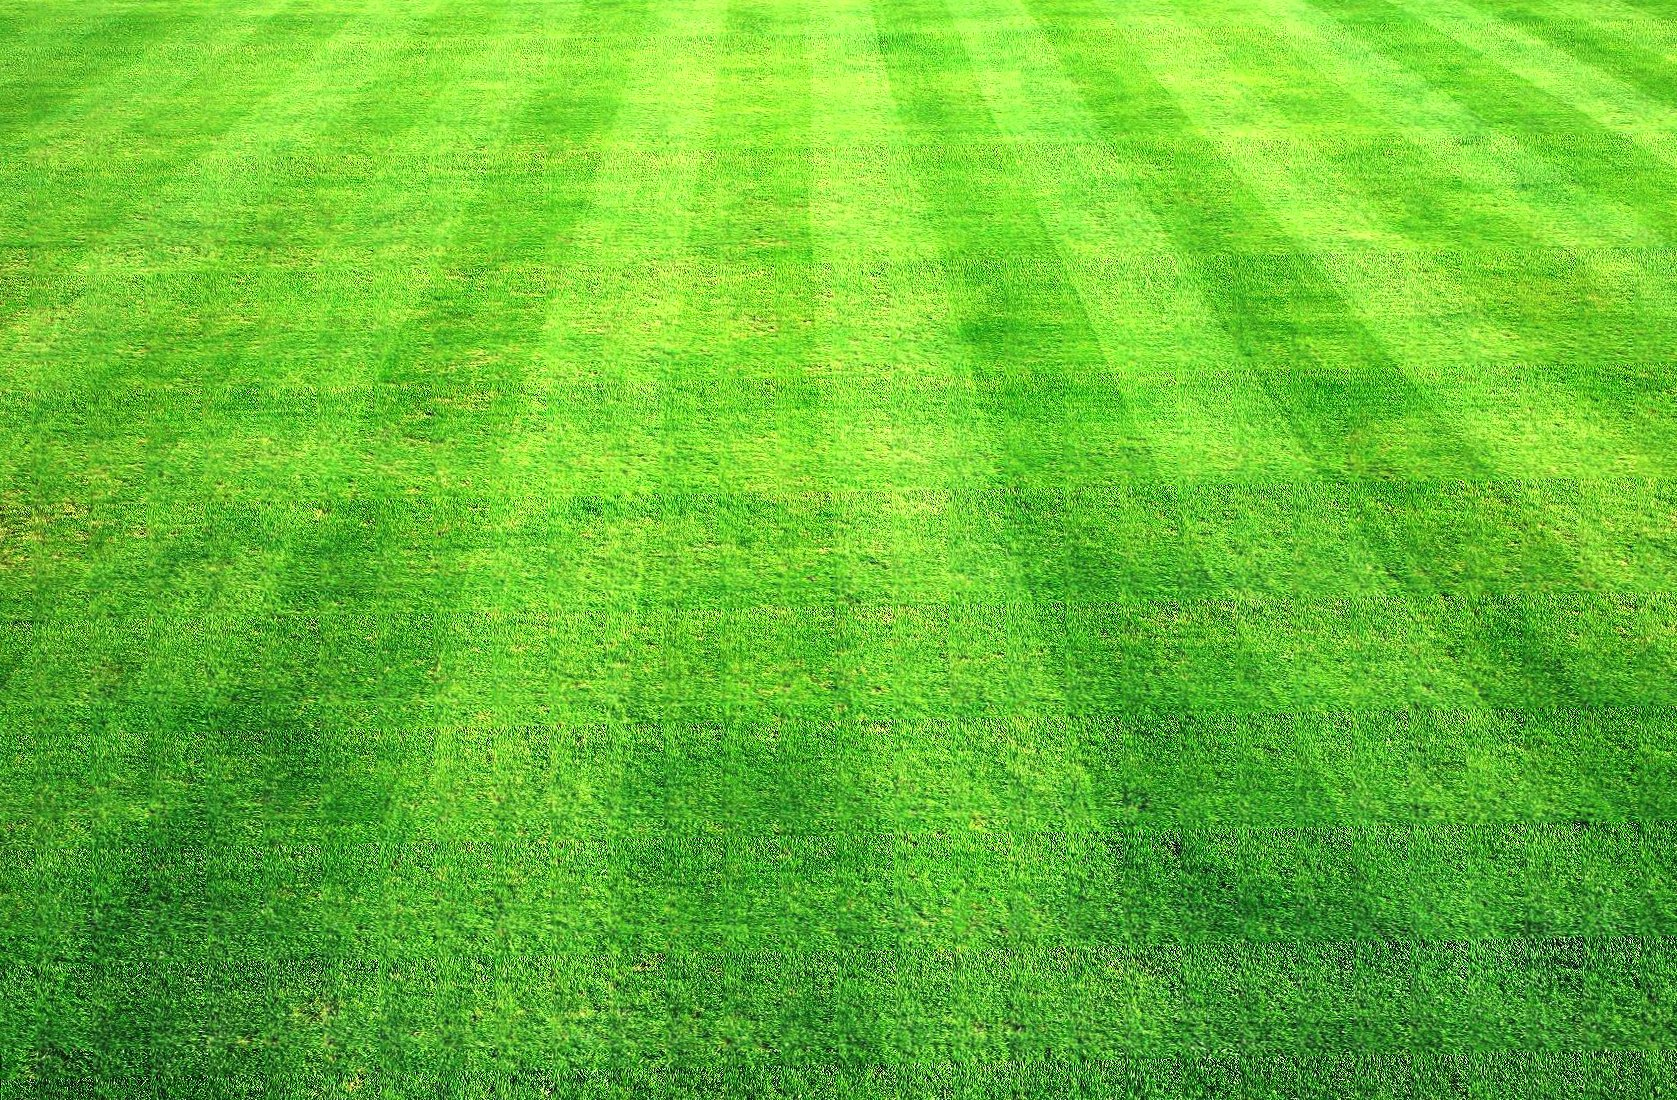 Grass clippings wallpapers HD quality